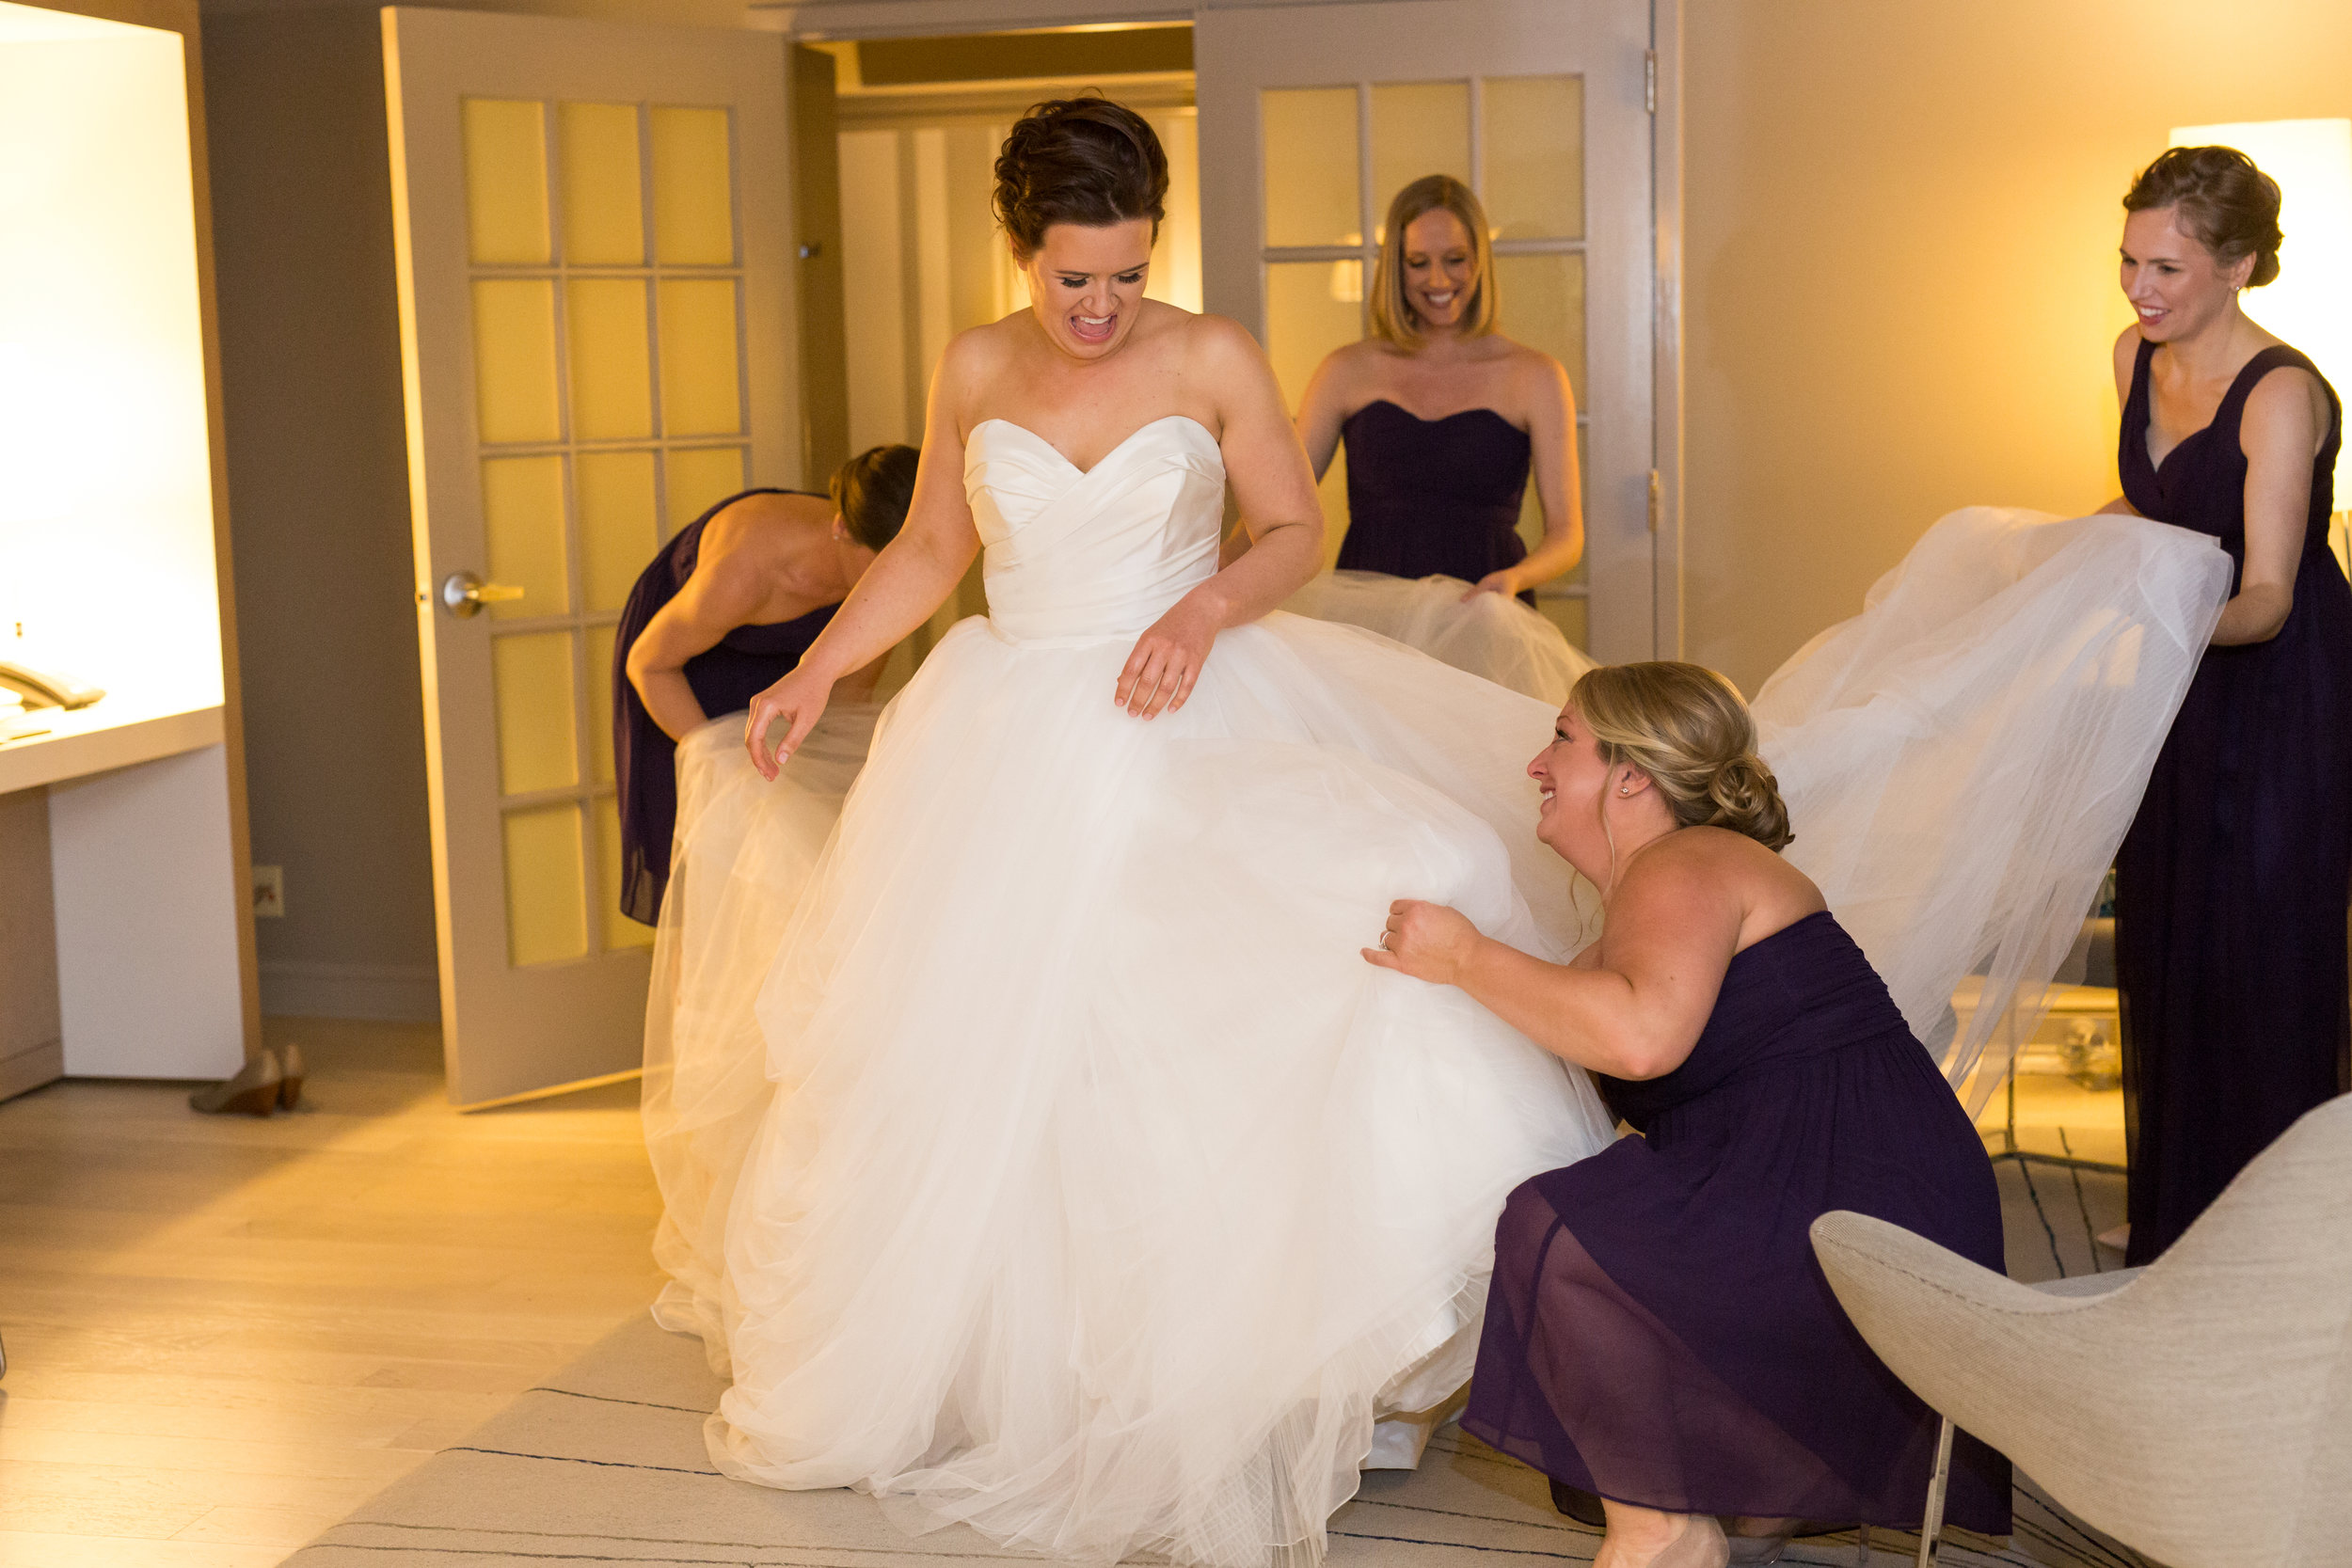 Vendors:Venue: Aria  | Photography: Studio 220 | Beauty: Primped | Catering: Chowgirls | Floral: Grace Klein Design | Rentals/Decor: Linen Effects | Cake: Cocoa & Fig | Ceremony Music: Lake String Quartet  | Officiant: Positively Charmed | Reception Entertainment: Adagio